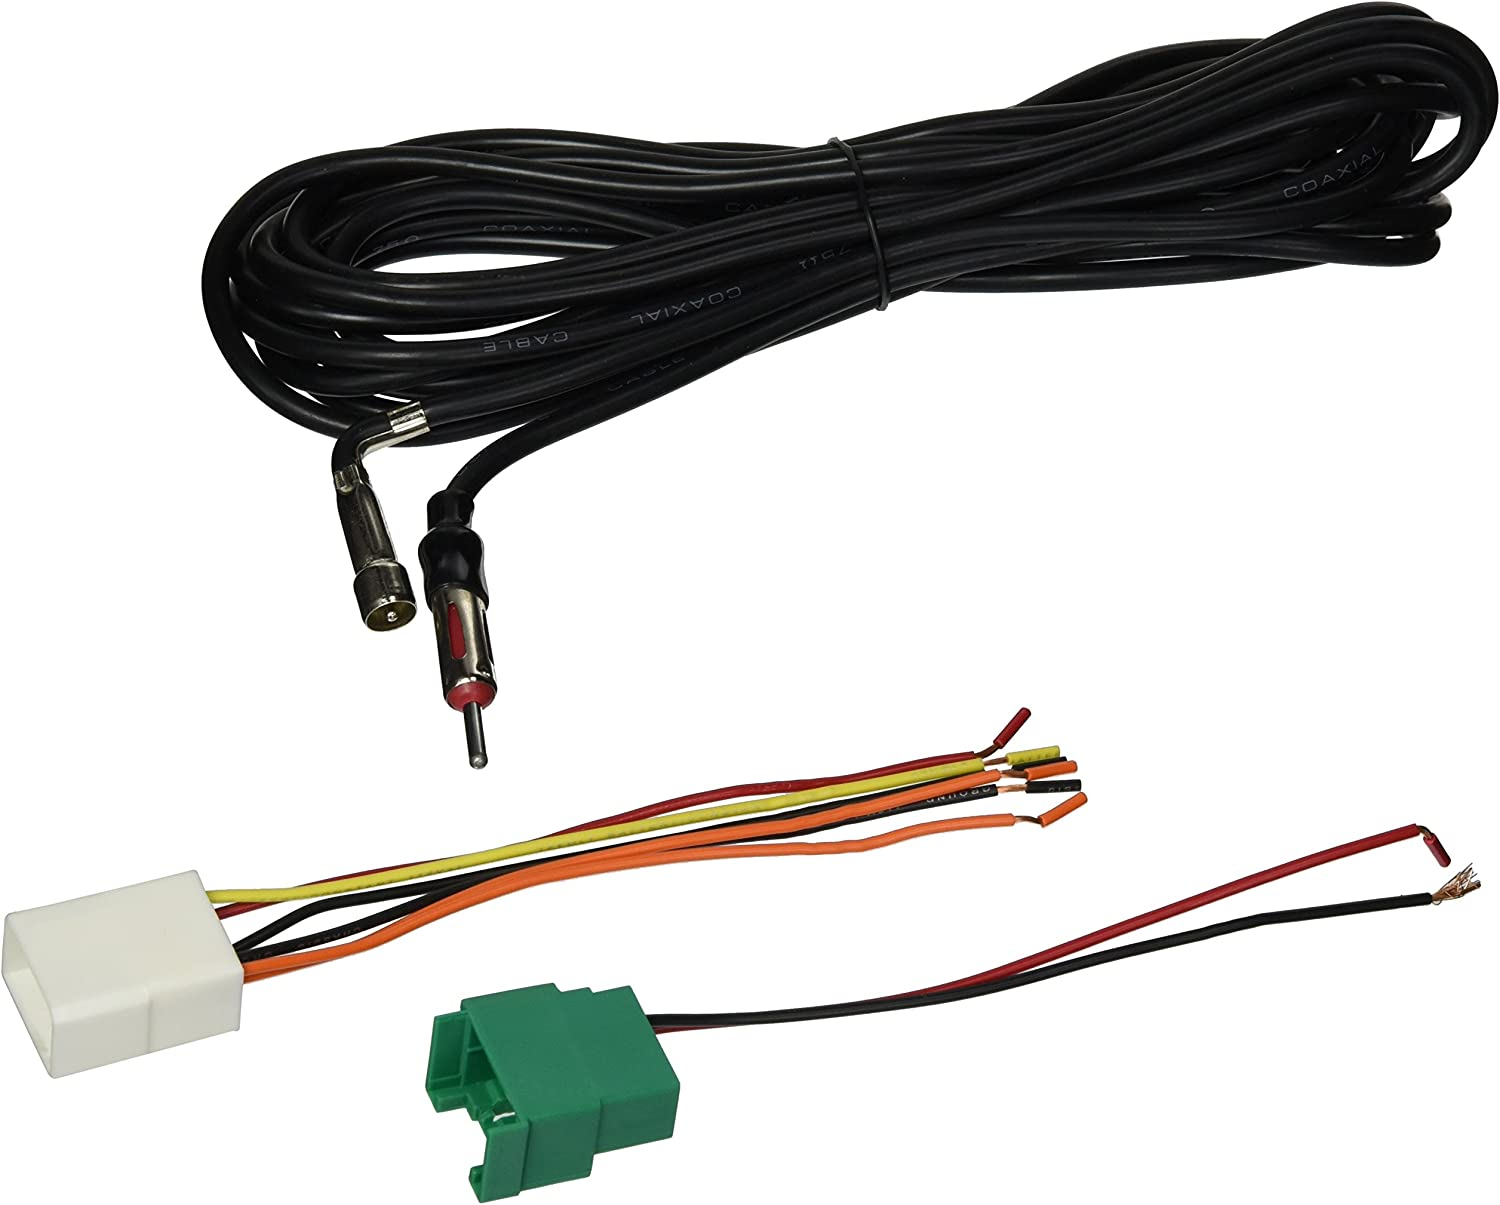 Amazon.com: Scosche FD09B Compatible with 1996-97 Ford Taurus Car Power  Connector / Wire Harness for Aftermarket Stereo Installation with Color  Coded Wires/Extension kit; For Rear Tuner/Amp: Car ElectronicsAmazon.com